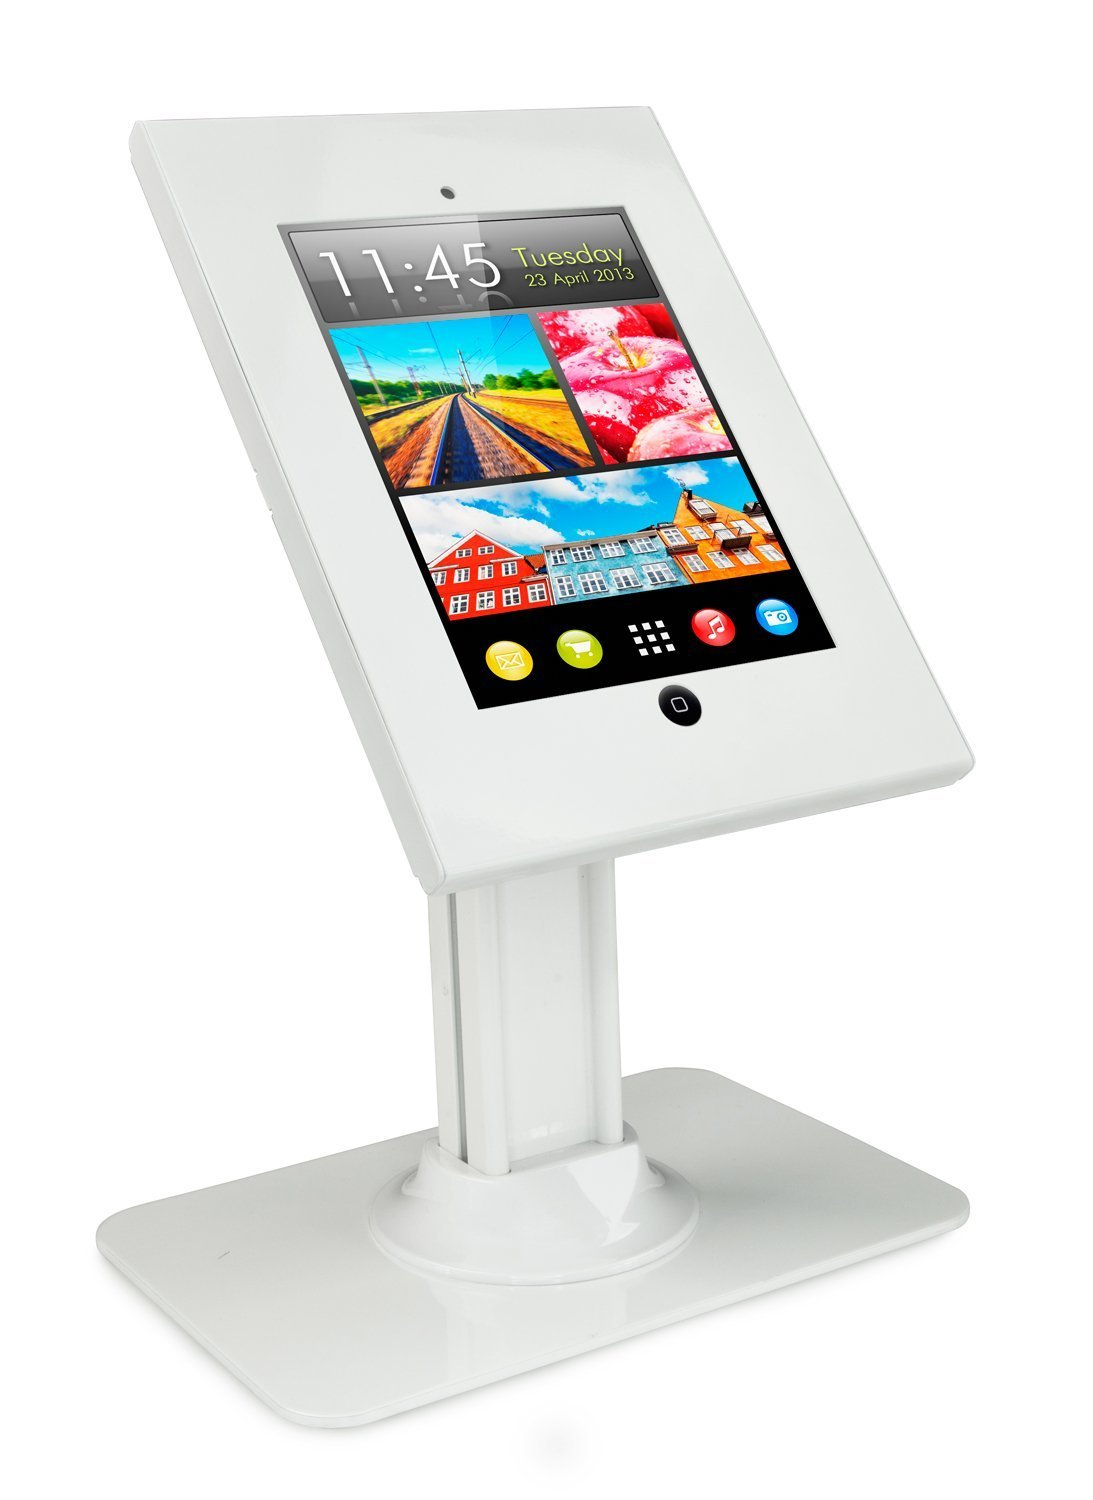 Recommended iPad table mount for Visitor Aware Check in Kiosks